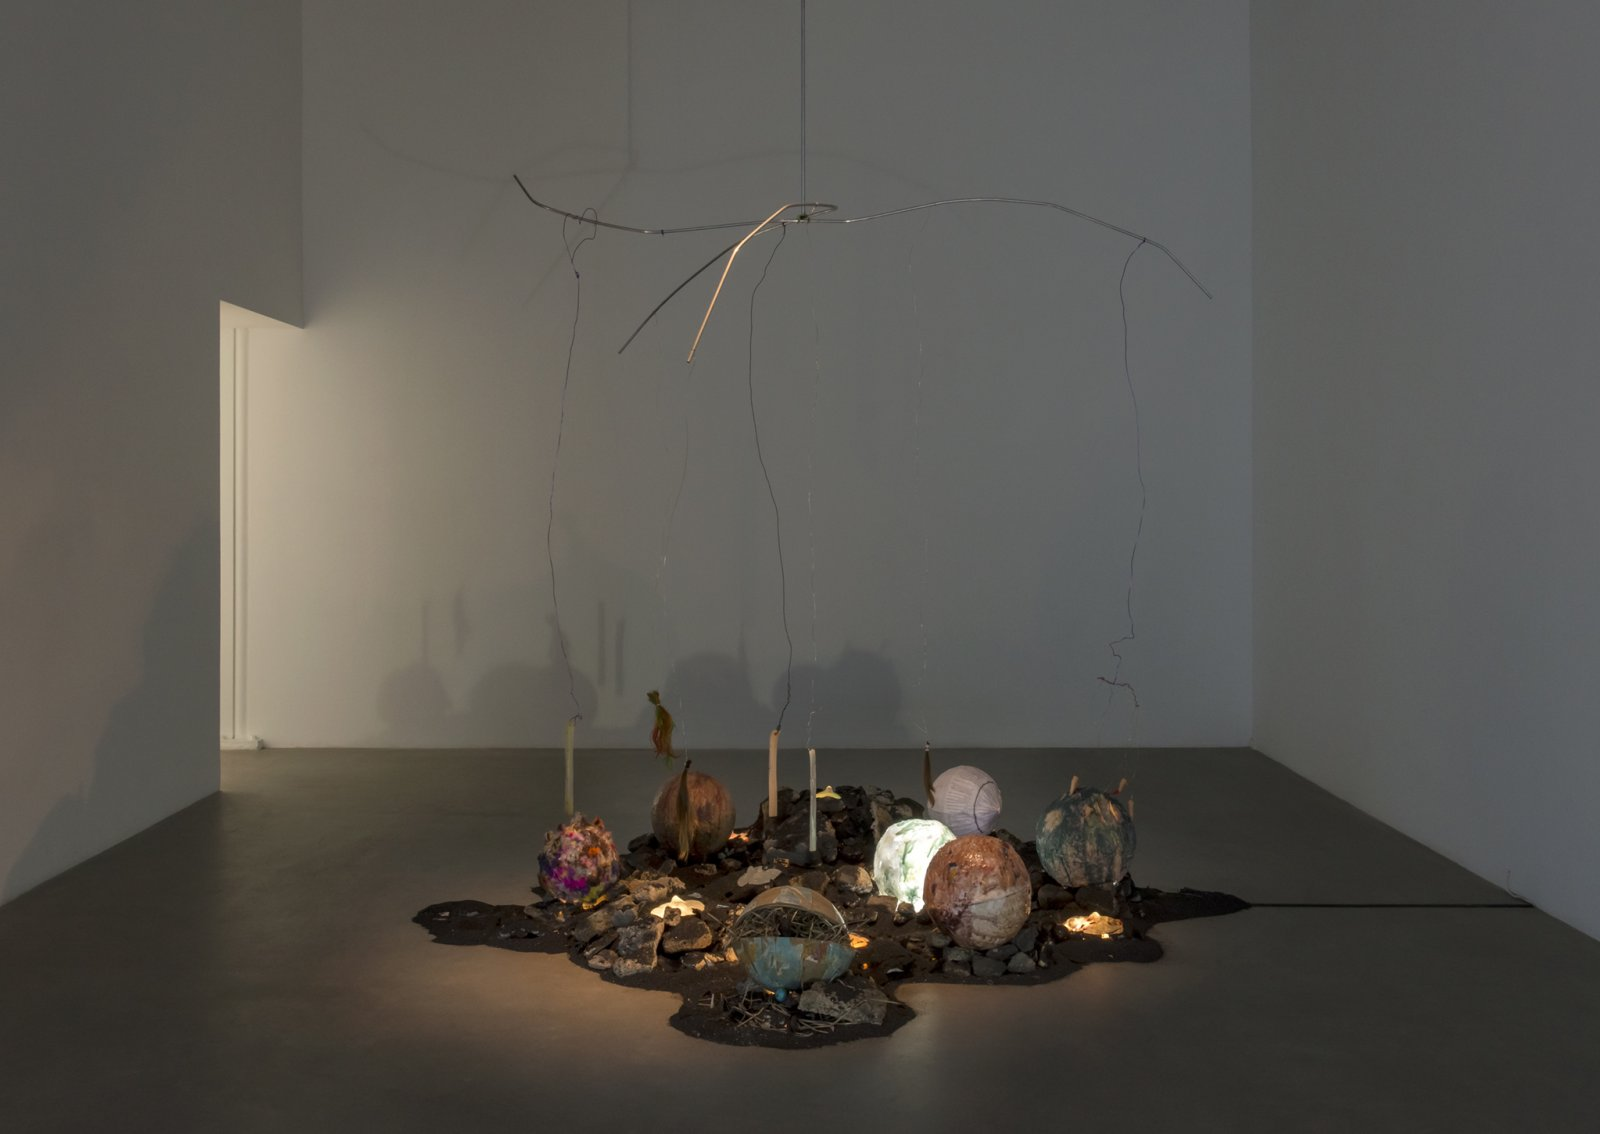 ​​Julia Feyrer, Device for sensing habitable zones, 2018, mixed media, 136 x 109 x 108 in. (354 x 277 x 274 cm)​ by Julia Feyrer